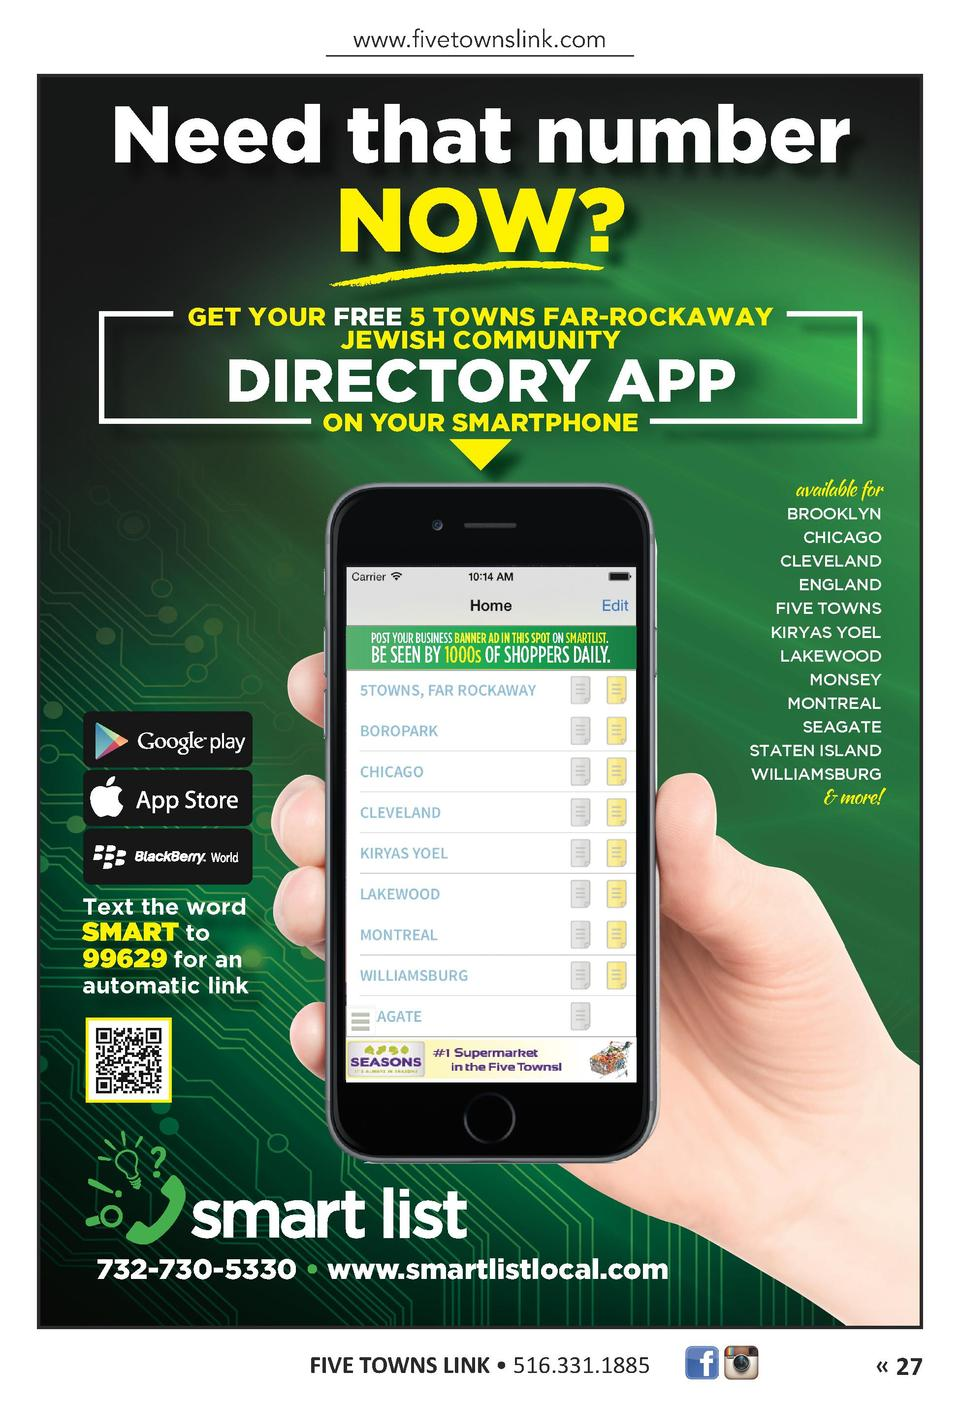 www.fivetownslink.com  Need that number  Now   Get your free 5 towns far-rockaway Jewish community  directory app oN your ...